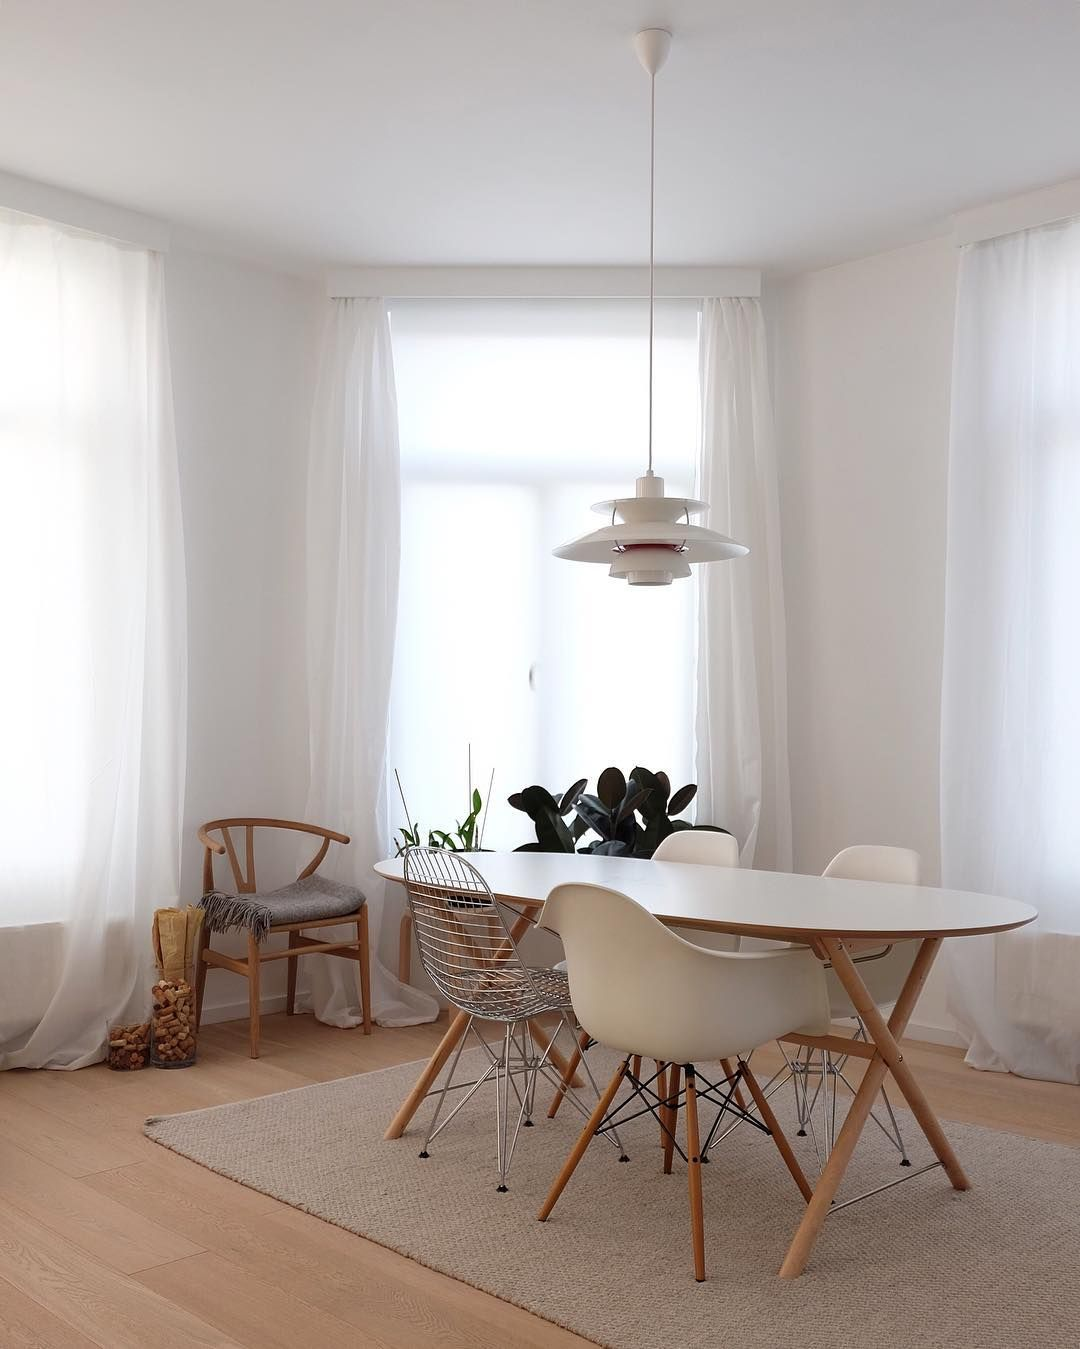 Ikea Dining Room Table: Ikea 'Slähult' Dining Table Matches Perfectly With The